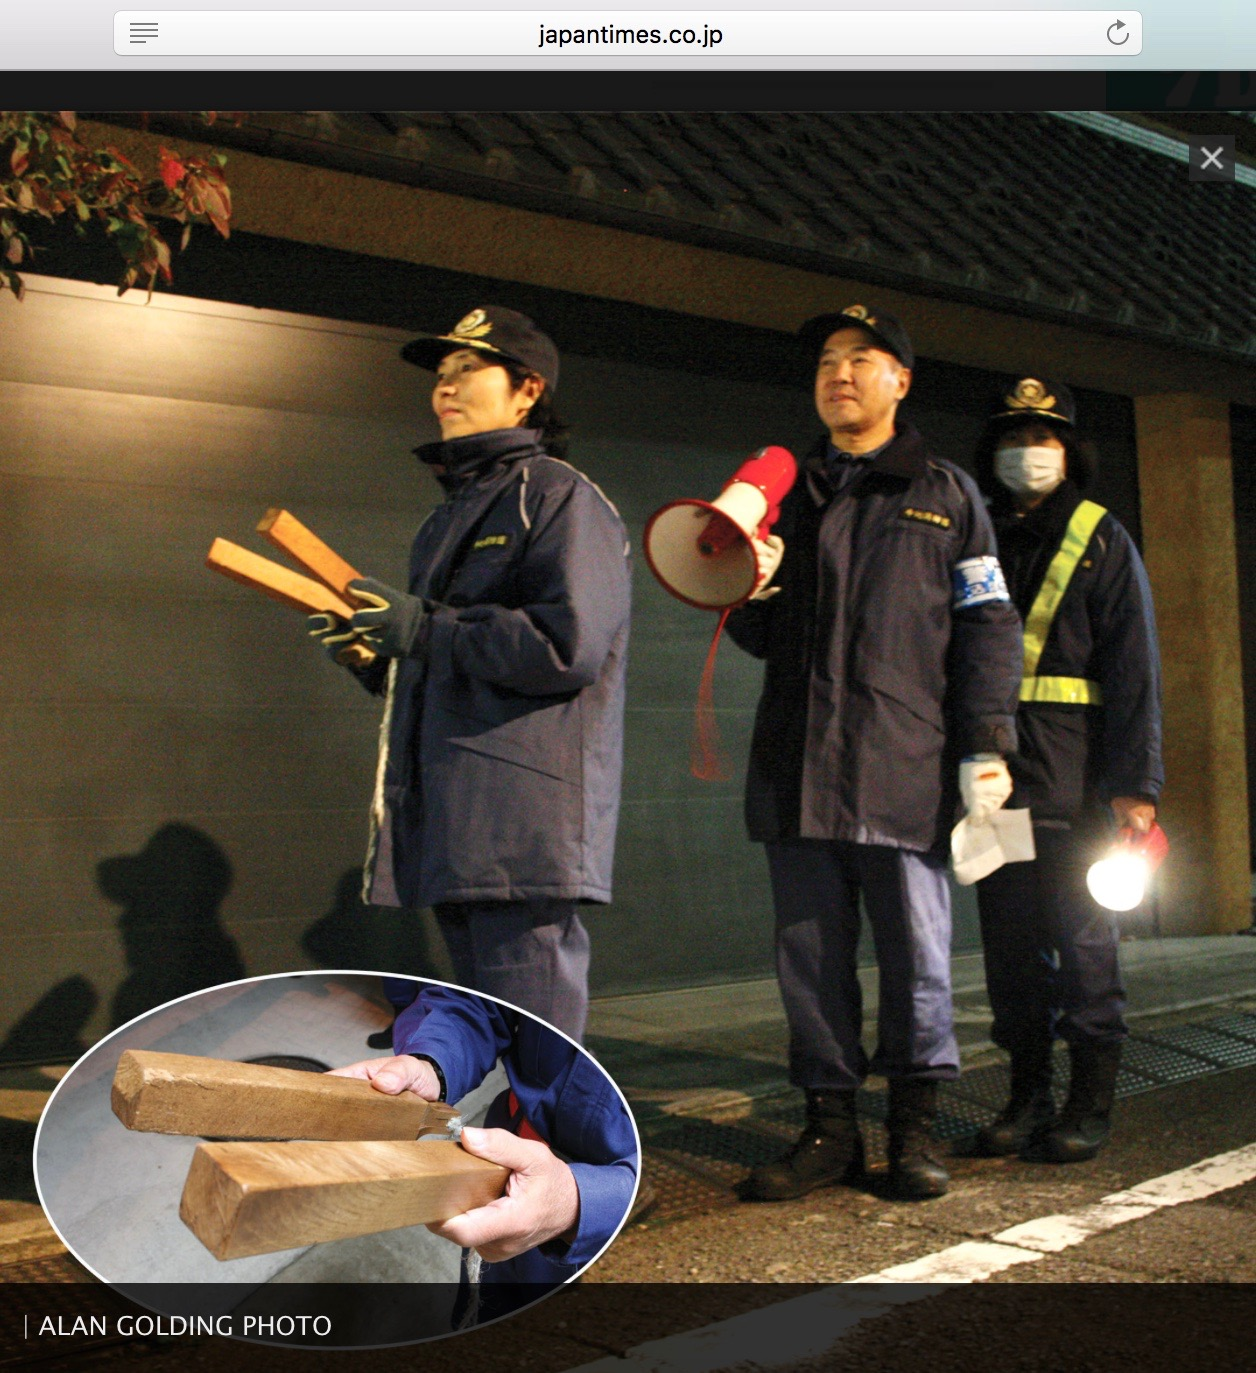 If I was in Kyoto in winter, I may hear the clapping sticks of the night patrols reminding people to be careful of fire. Source: Japan Times.